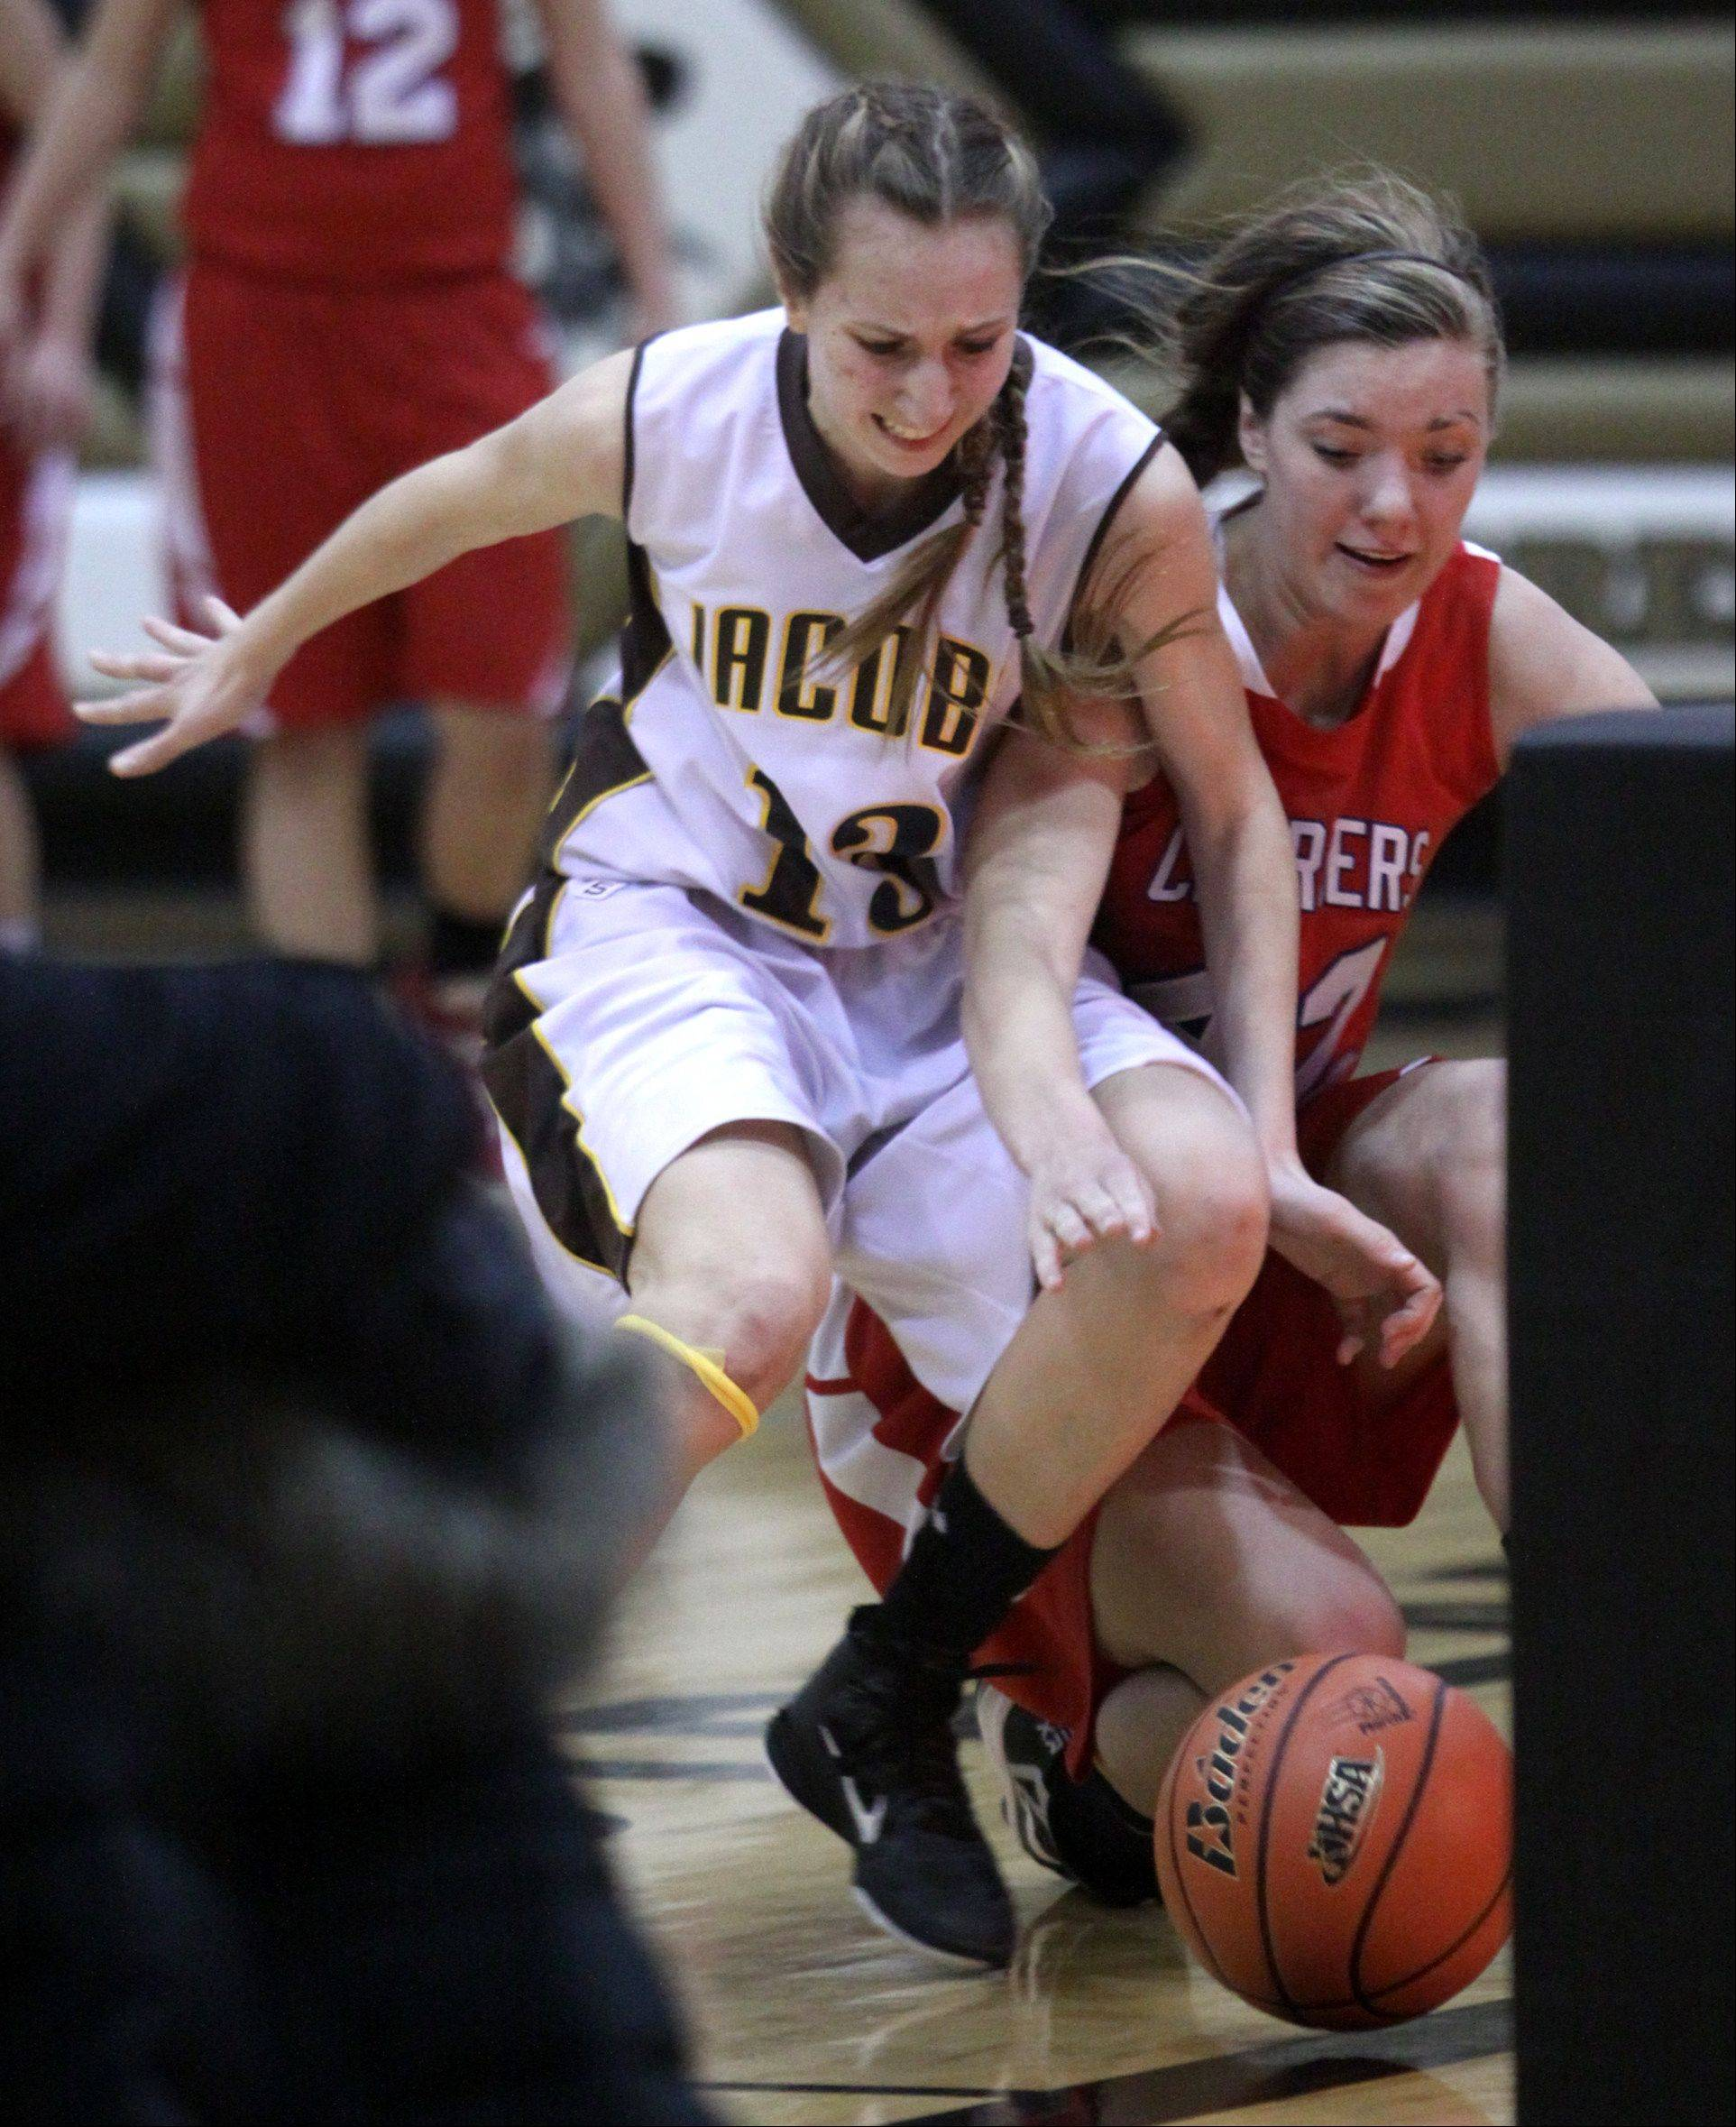 Dundee-Crown's Emily Michalski, right, races Jacobs' Victoria Tamburrino to the ball.